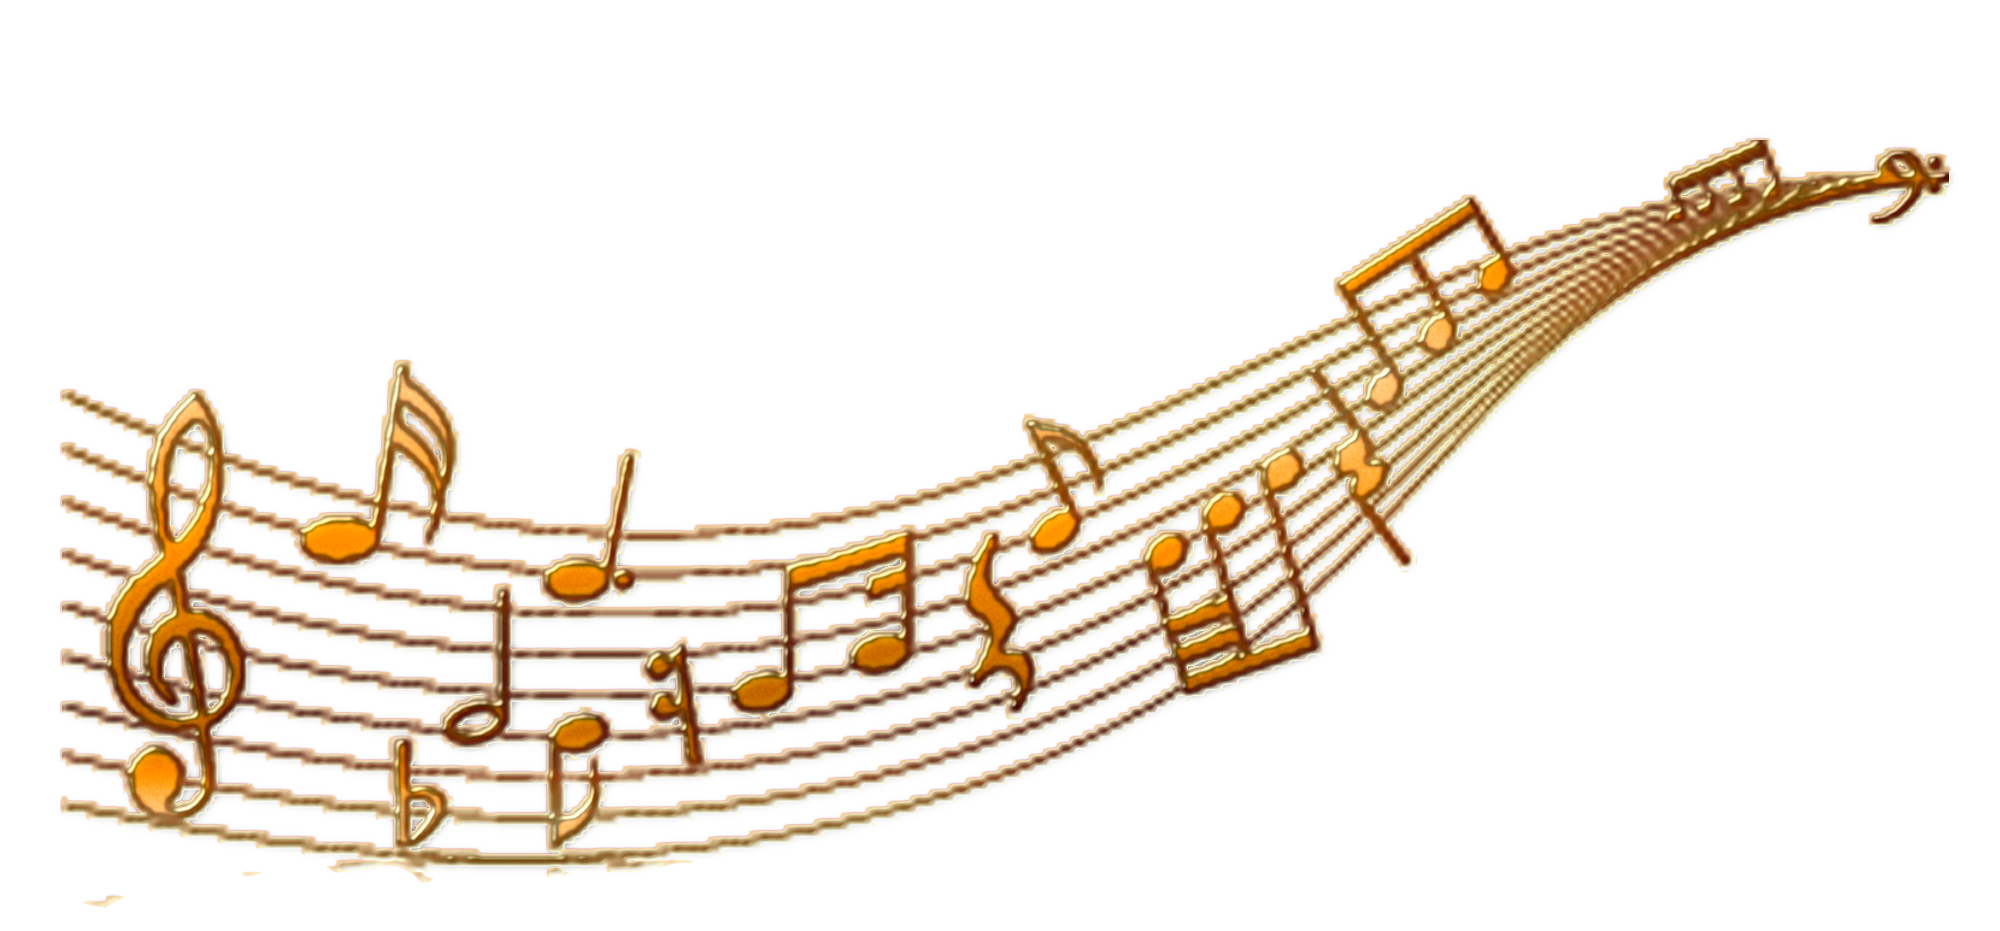 Download Music Notes Download Image PNG Download Free HQ ...